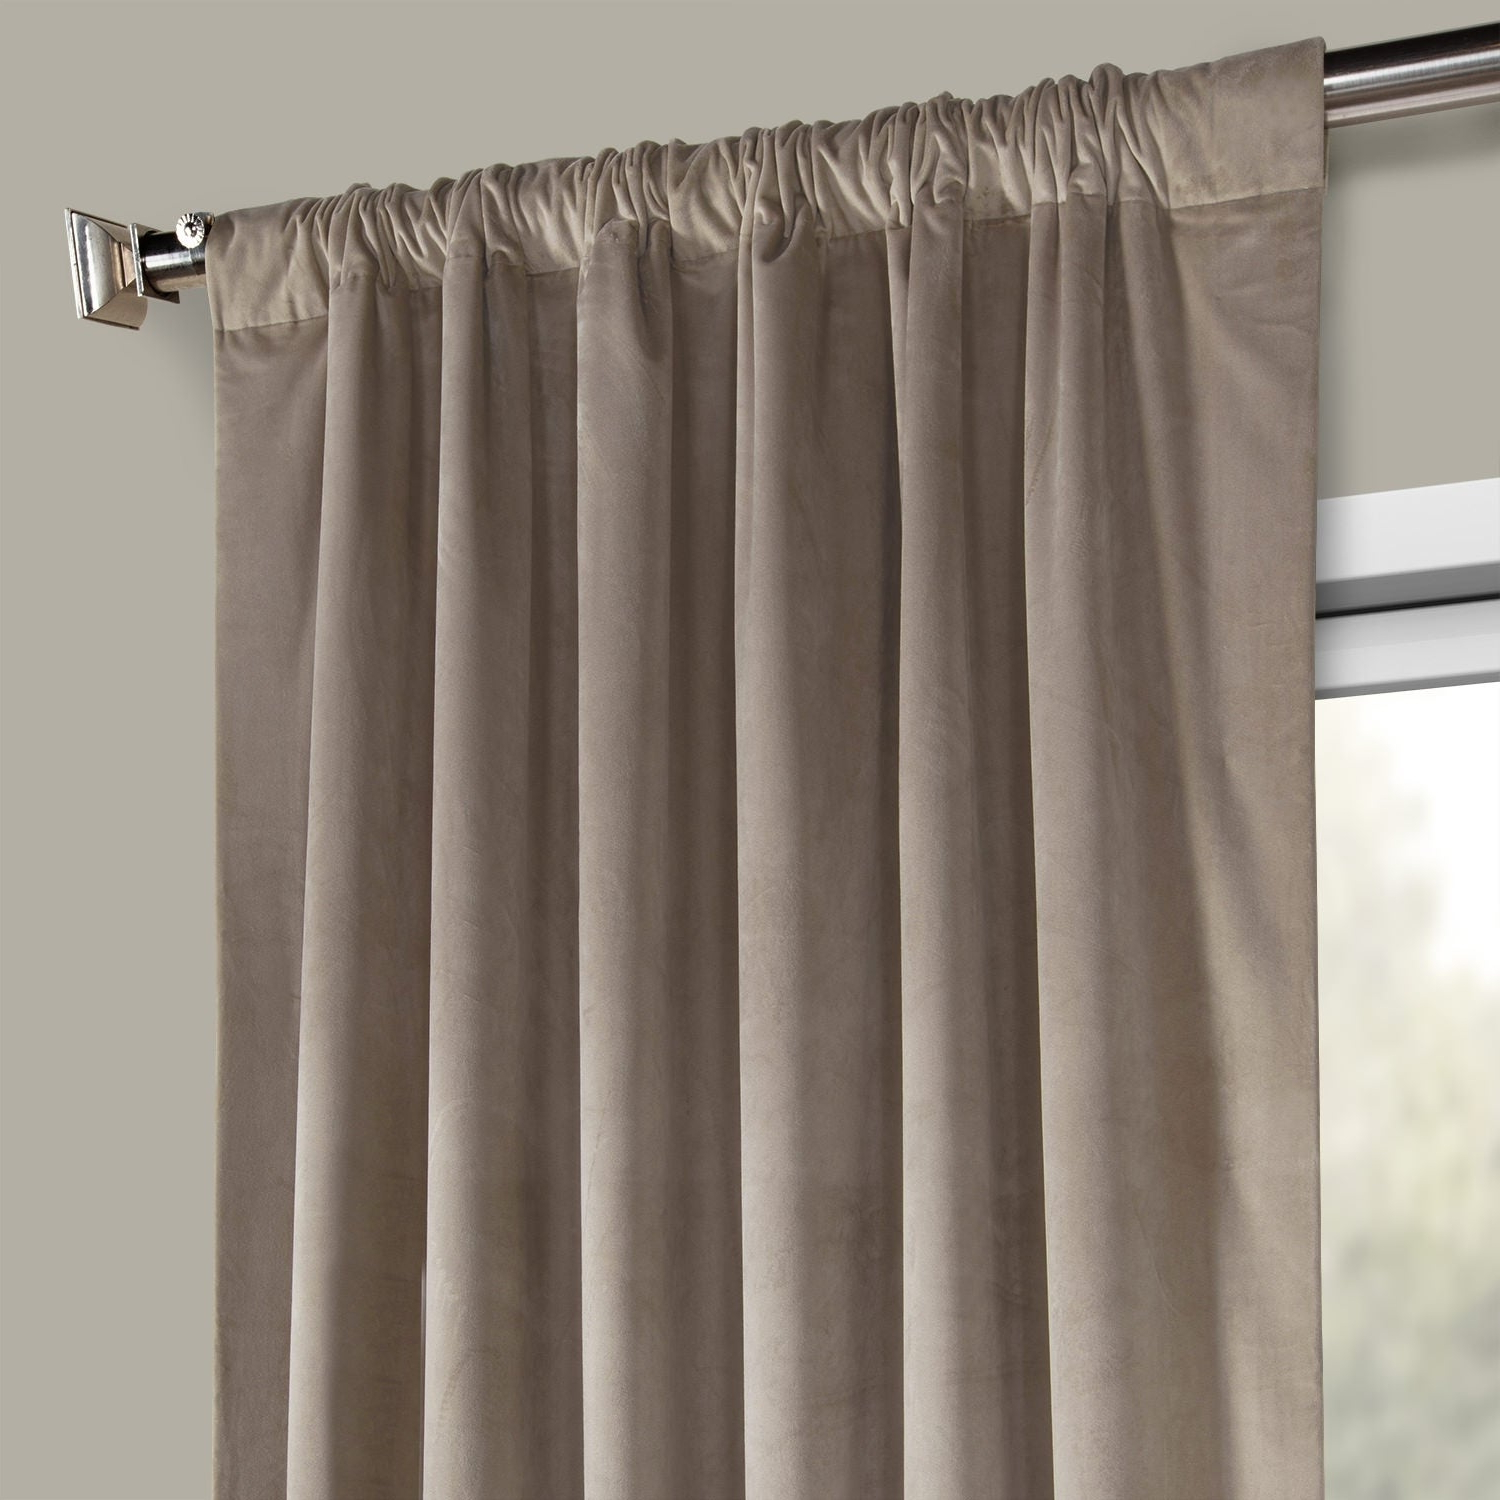 Exclusive Fabrics Heritage Plush Velvet Single Curtain Panel With Well Known Heritage Plush Velvet Curtains (View 8 of 20)